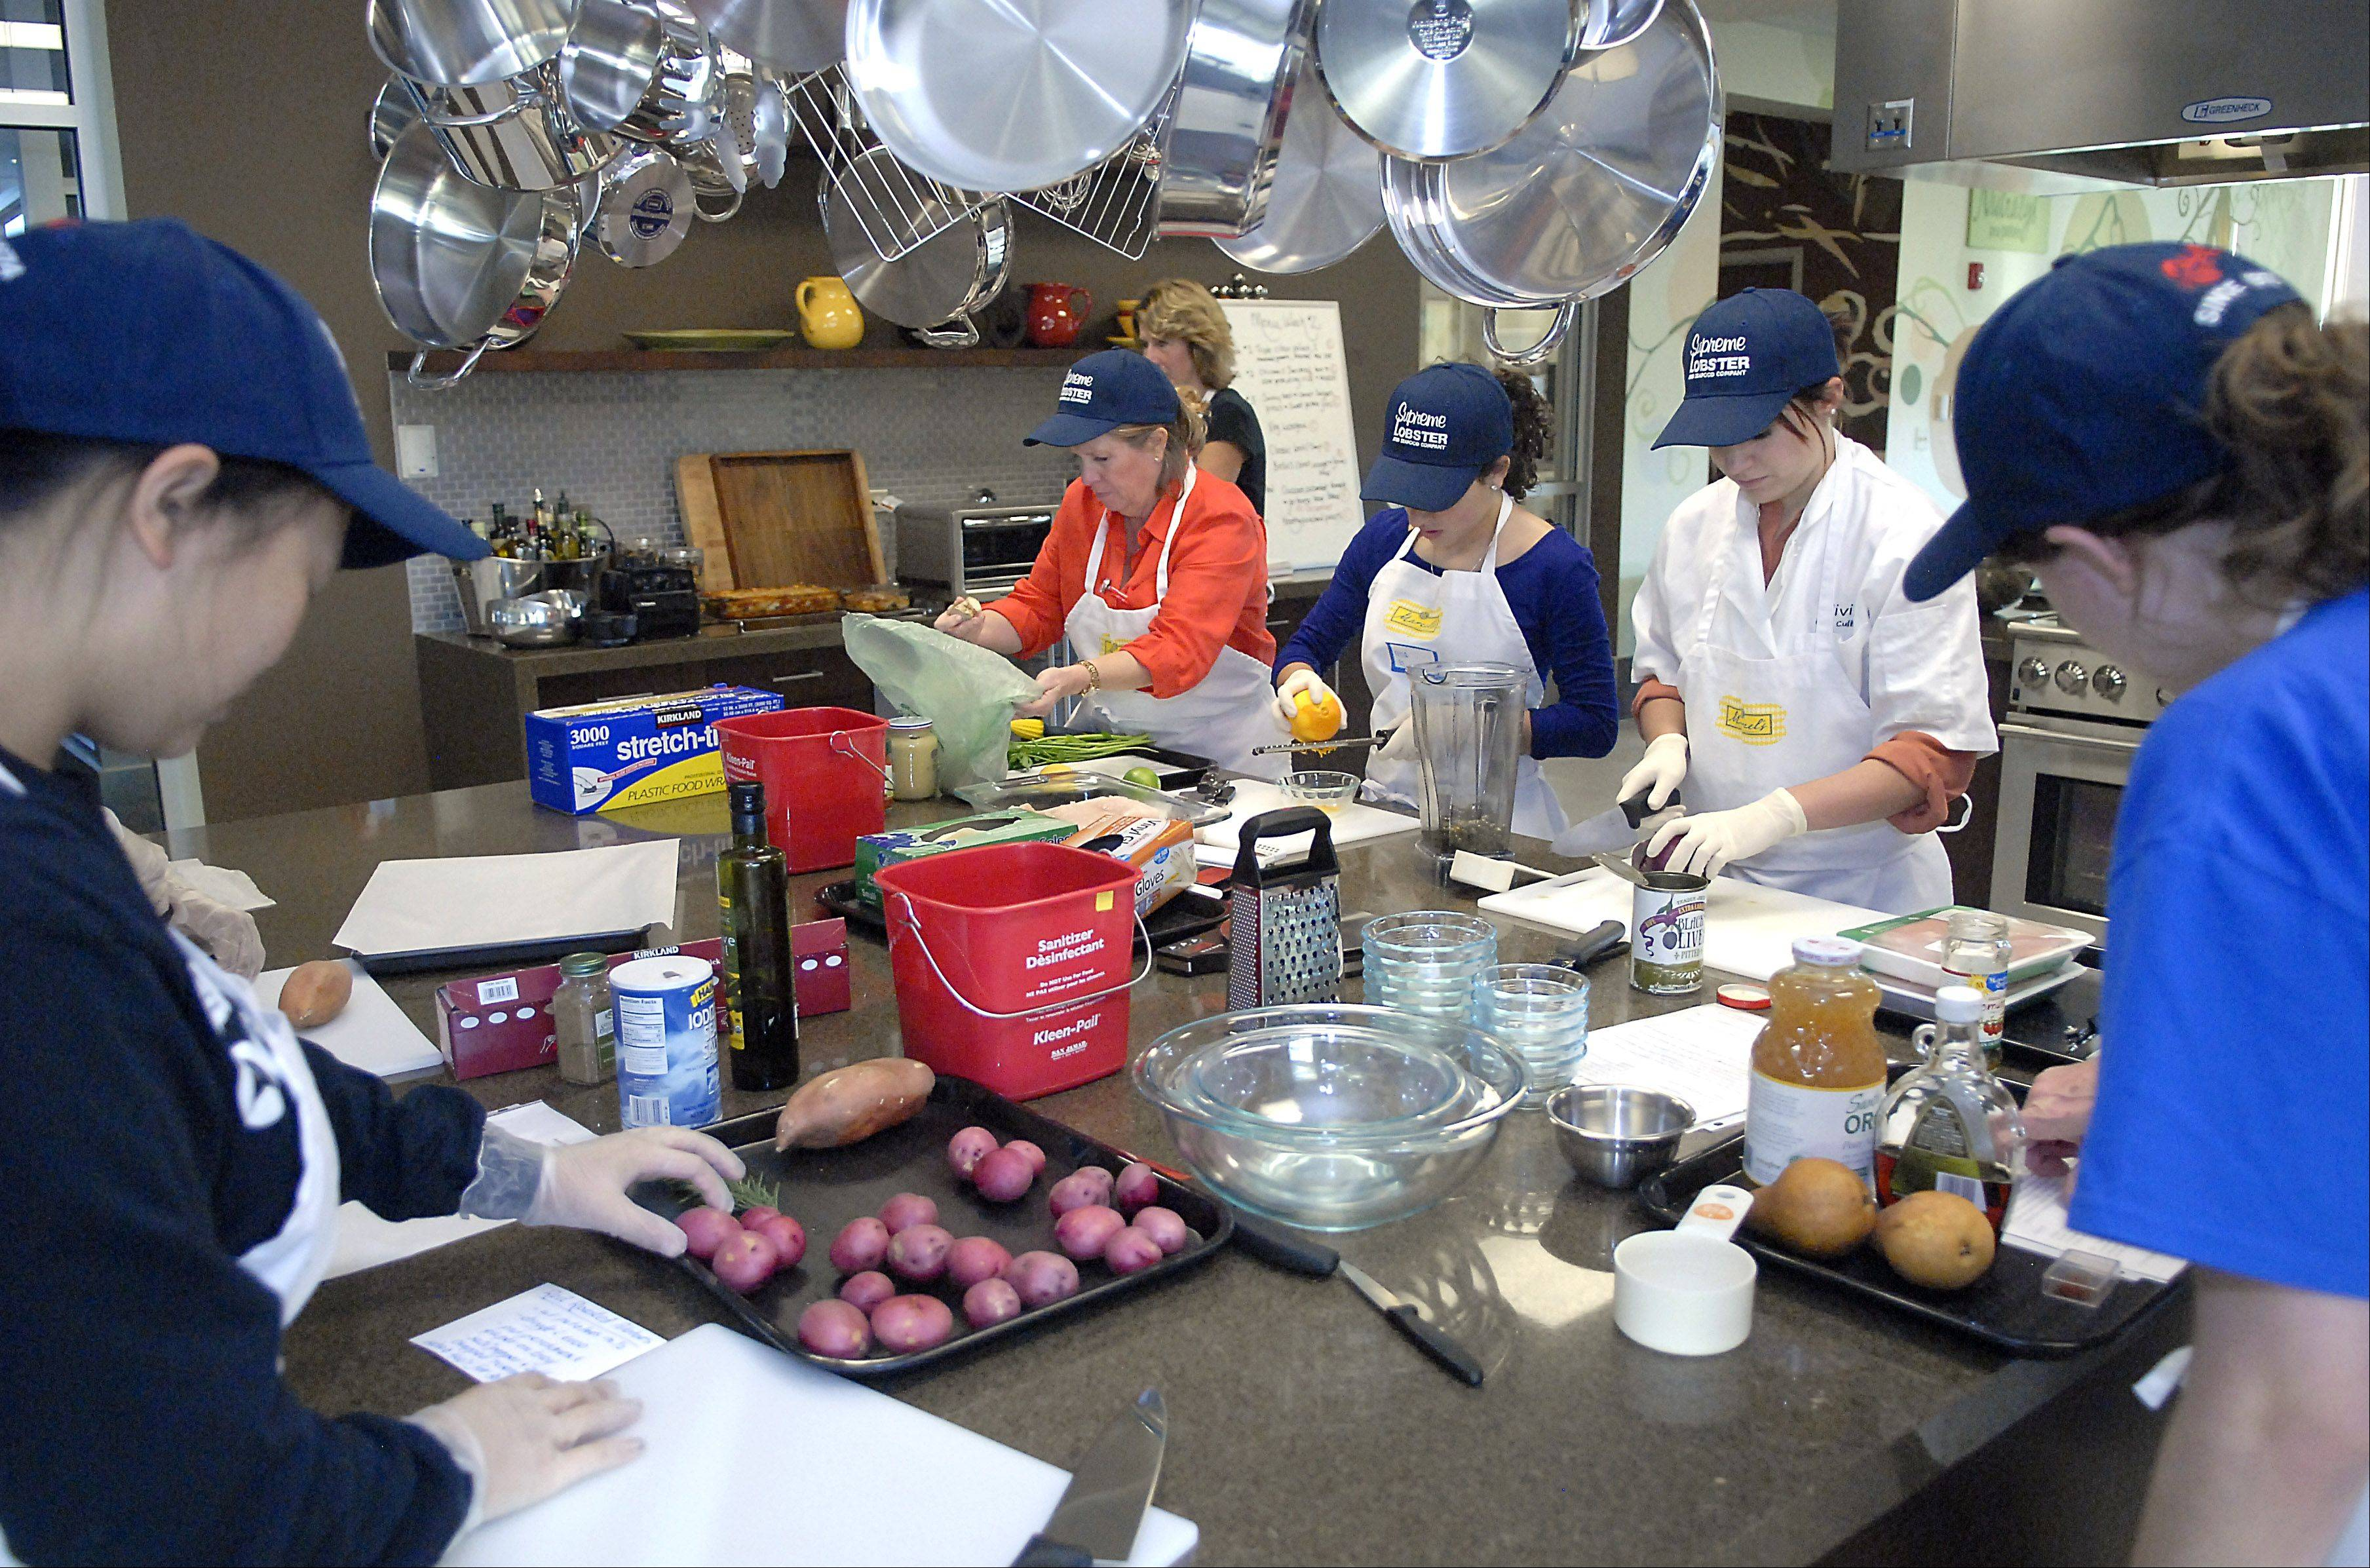 Nutritionist and program director Mary Fremgen, center, works with Geneva High School students in the Roquette America kitchen in Geneva. Students prepare meals for people with life-threatening illnesses registered with Fox Valley Food for Health.